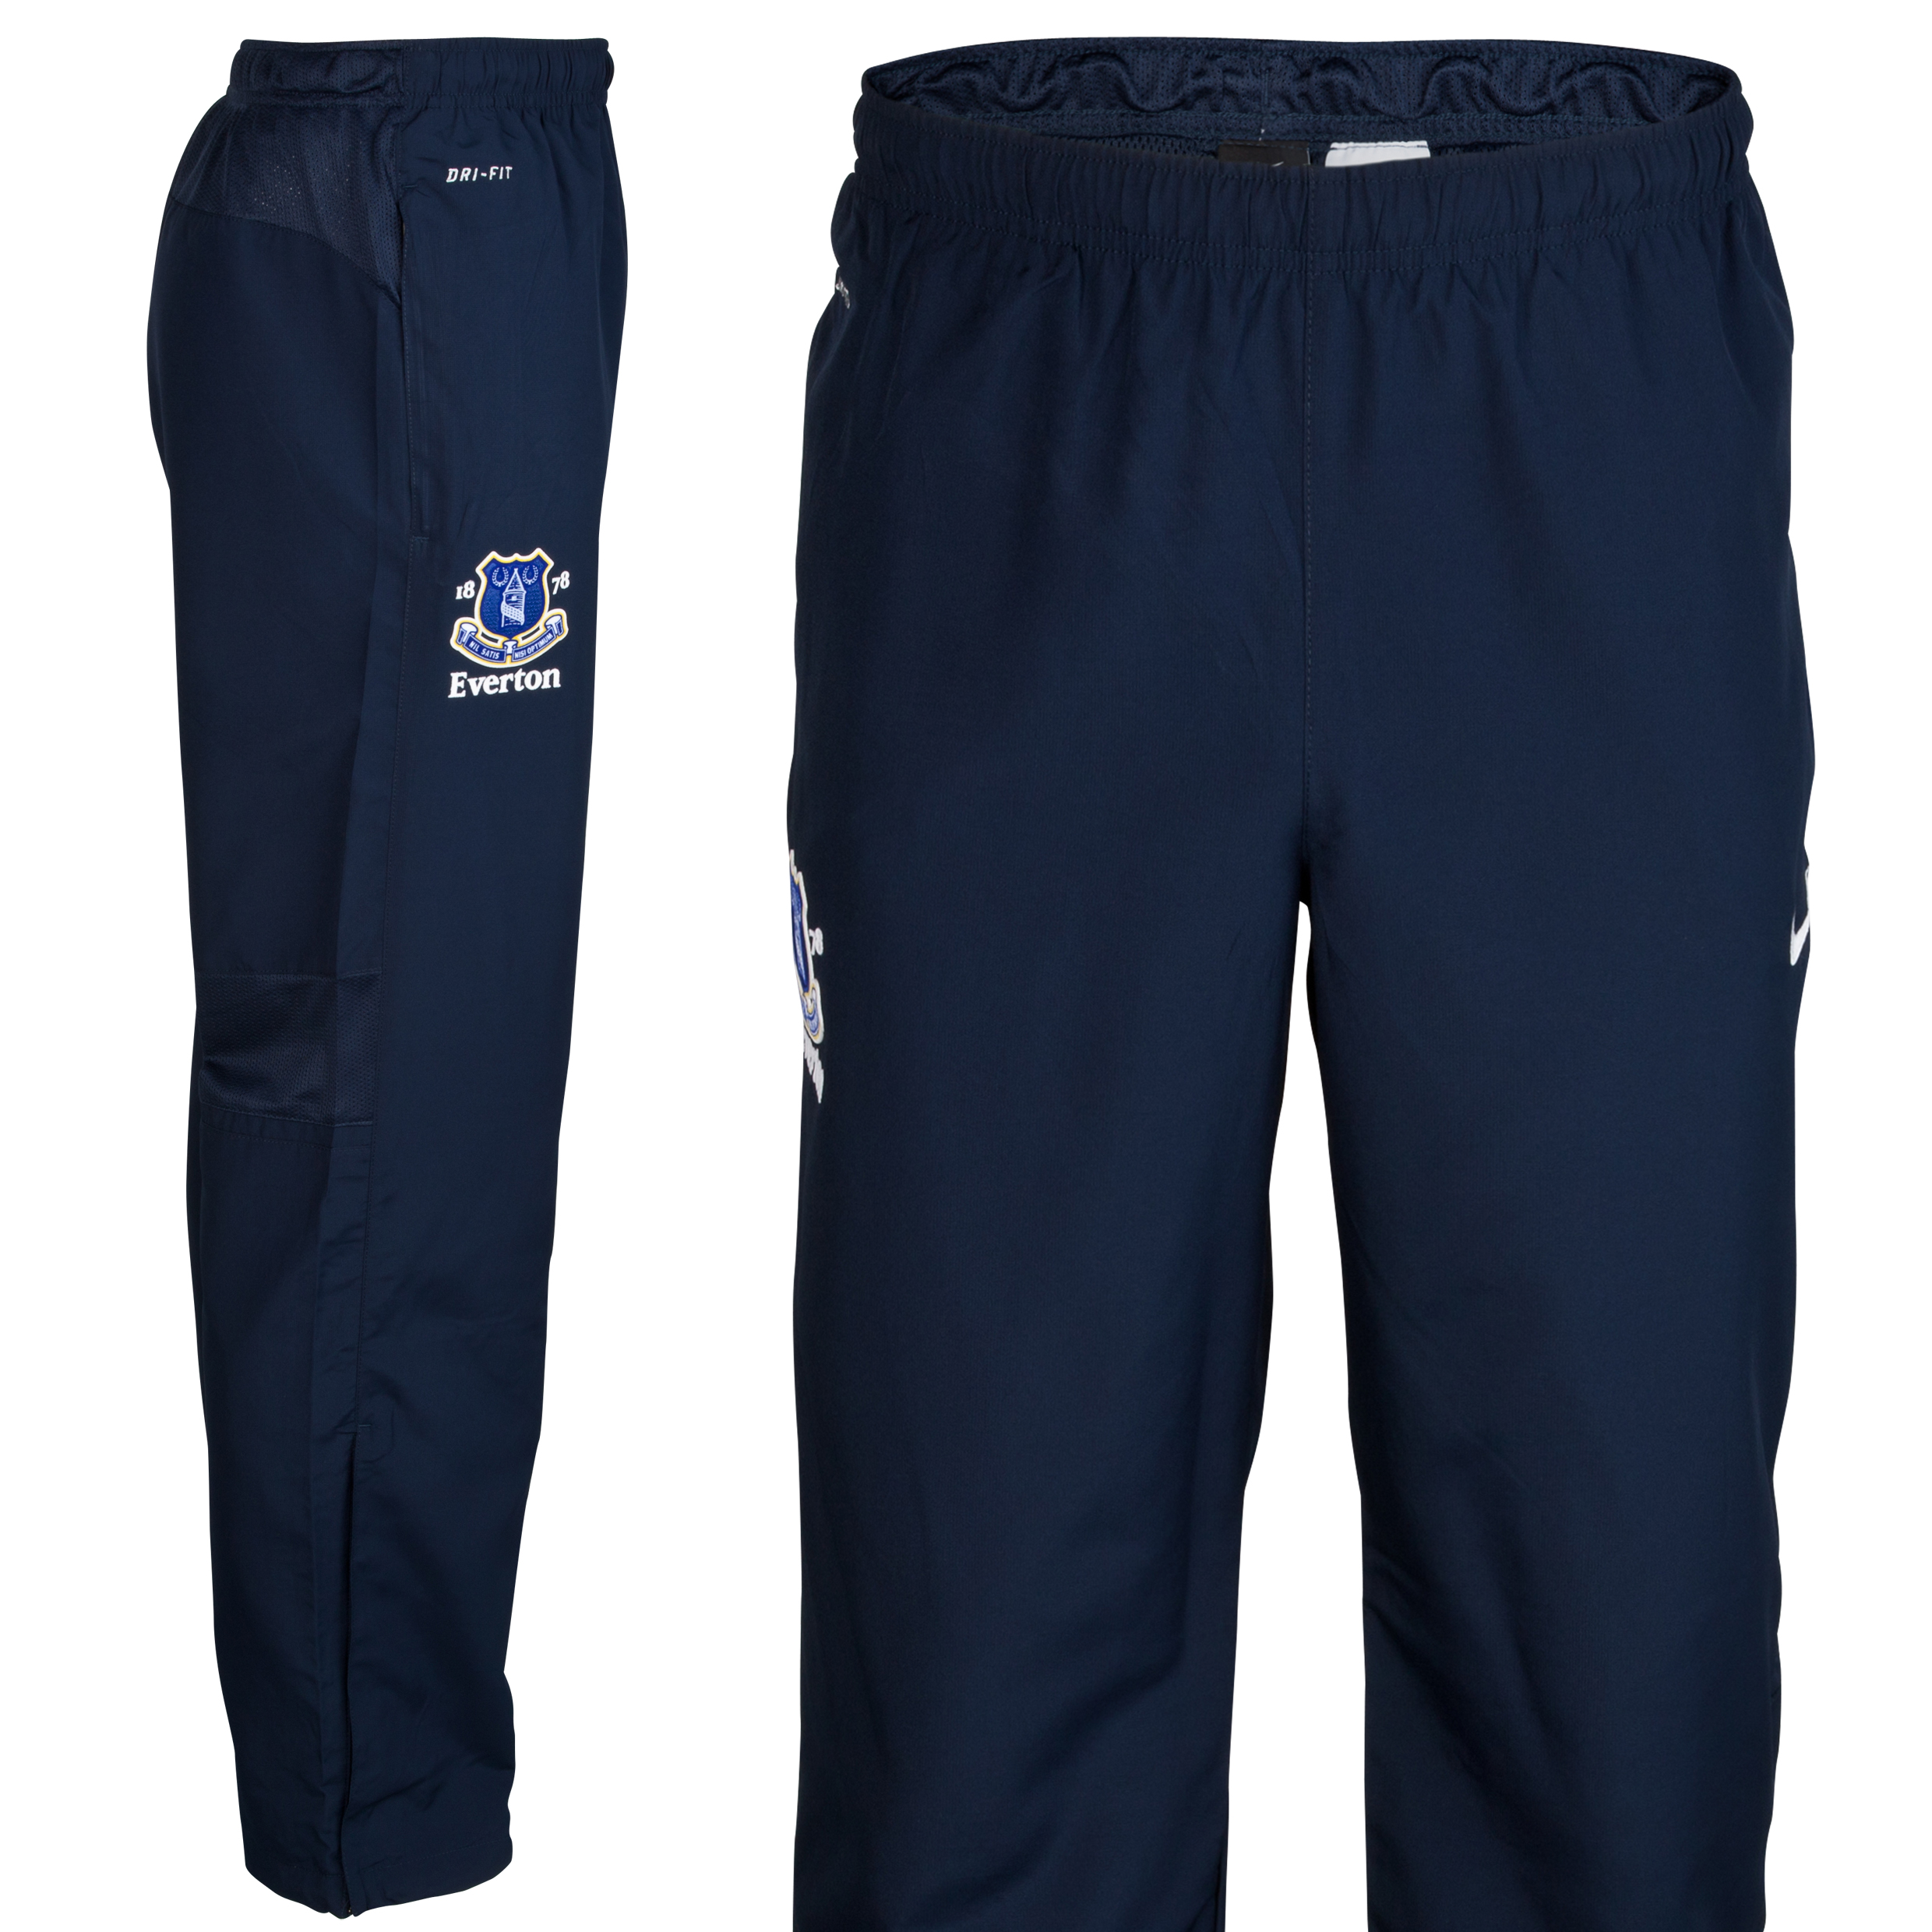 Everton Woven Track Pant - Junior - Obsidian/White